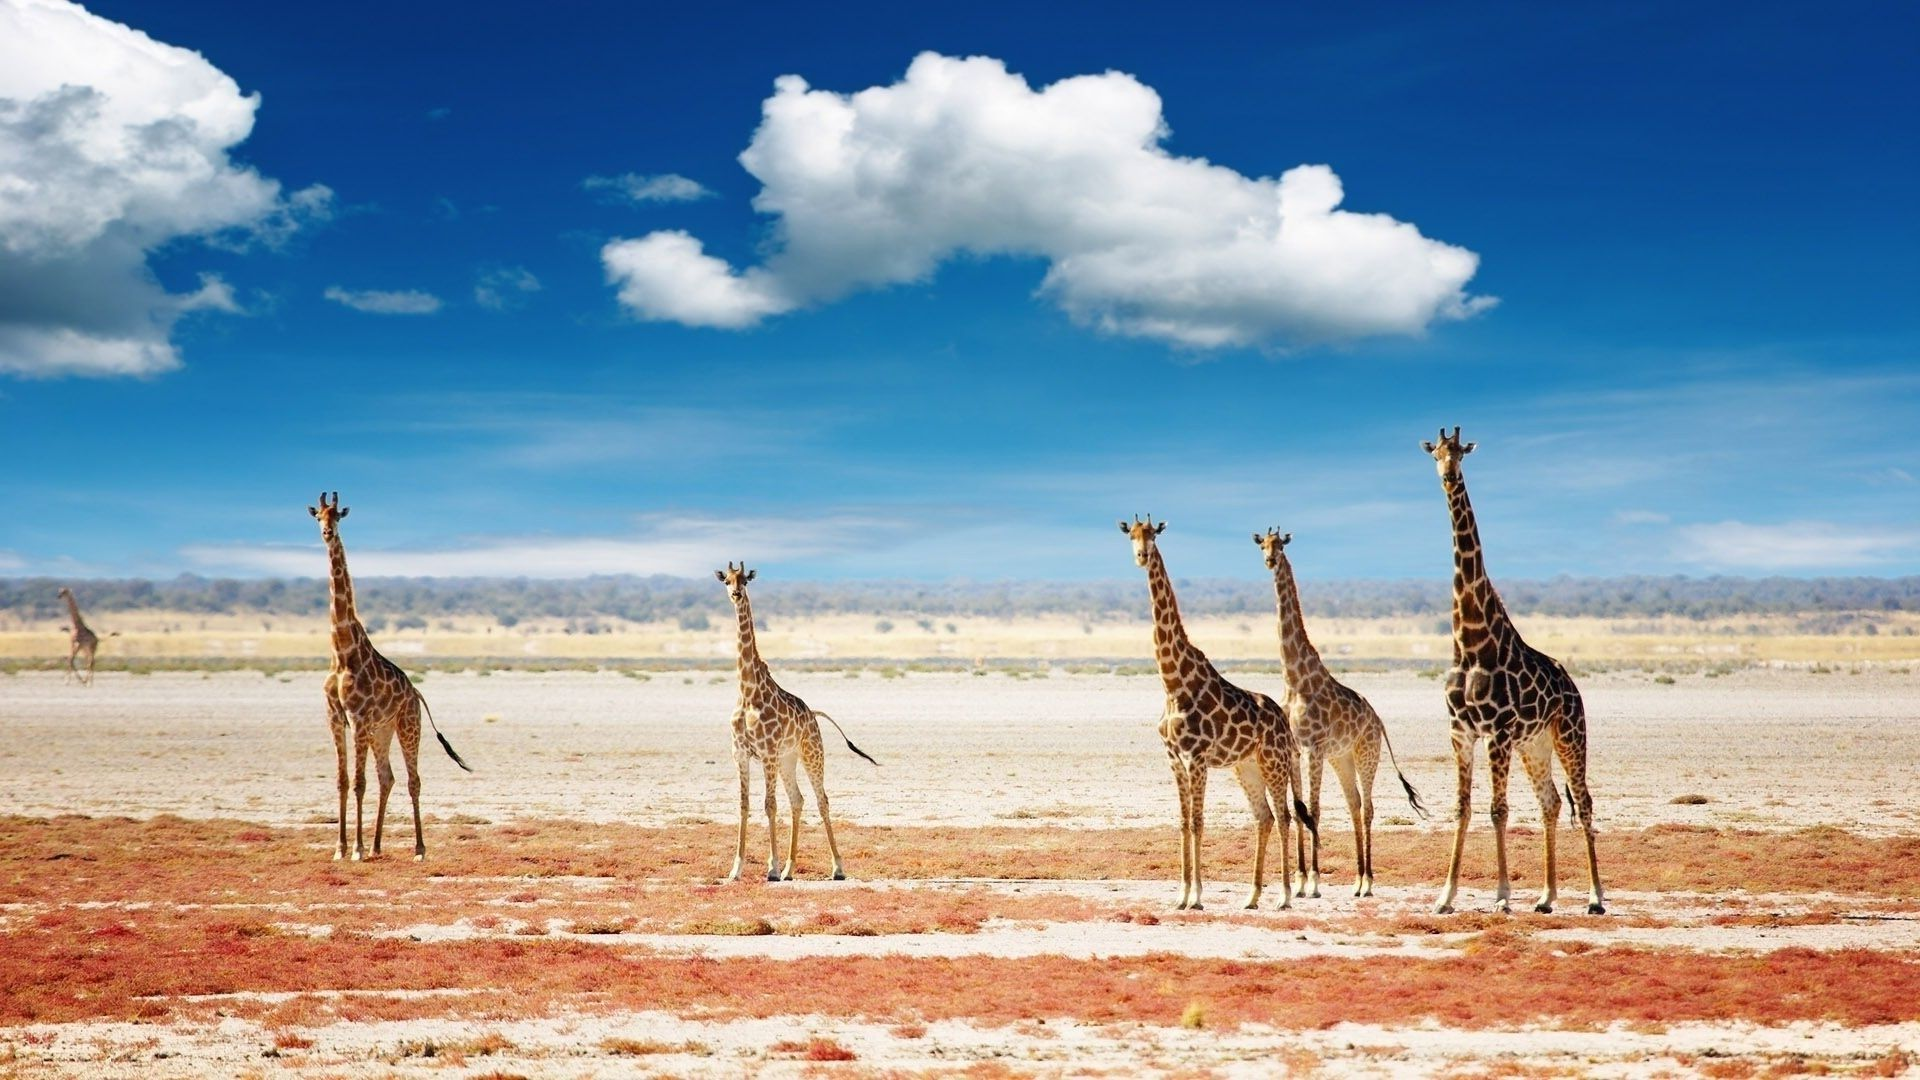 Wallpapers Africa With A Giraffe